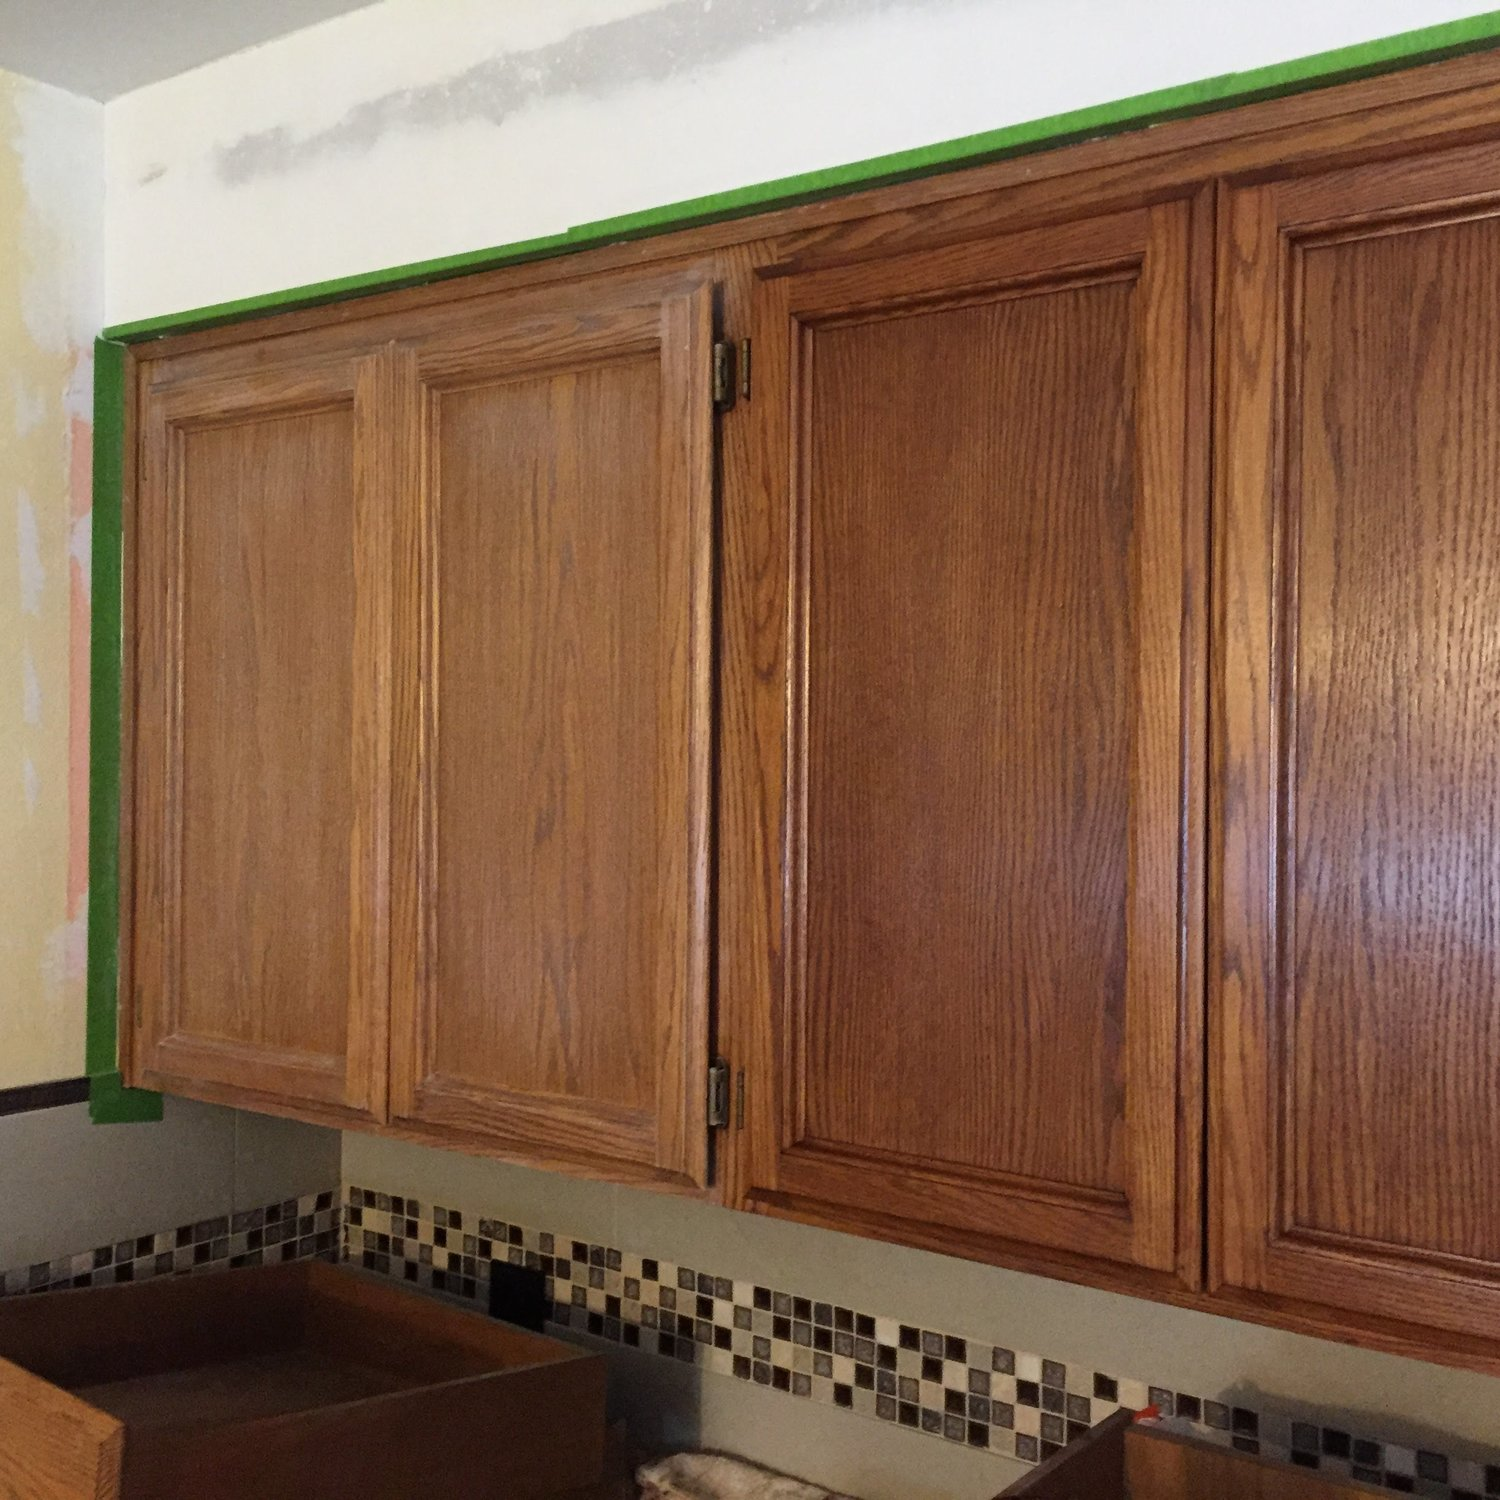 Pleasing Signs Your Old Cabinets Can Be Refinished The Wood Doctor Interior Design Ideas Gresisoteloinfo